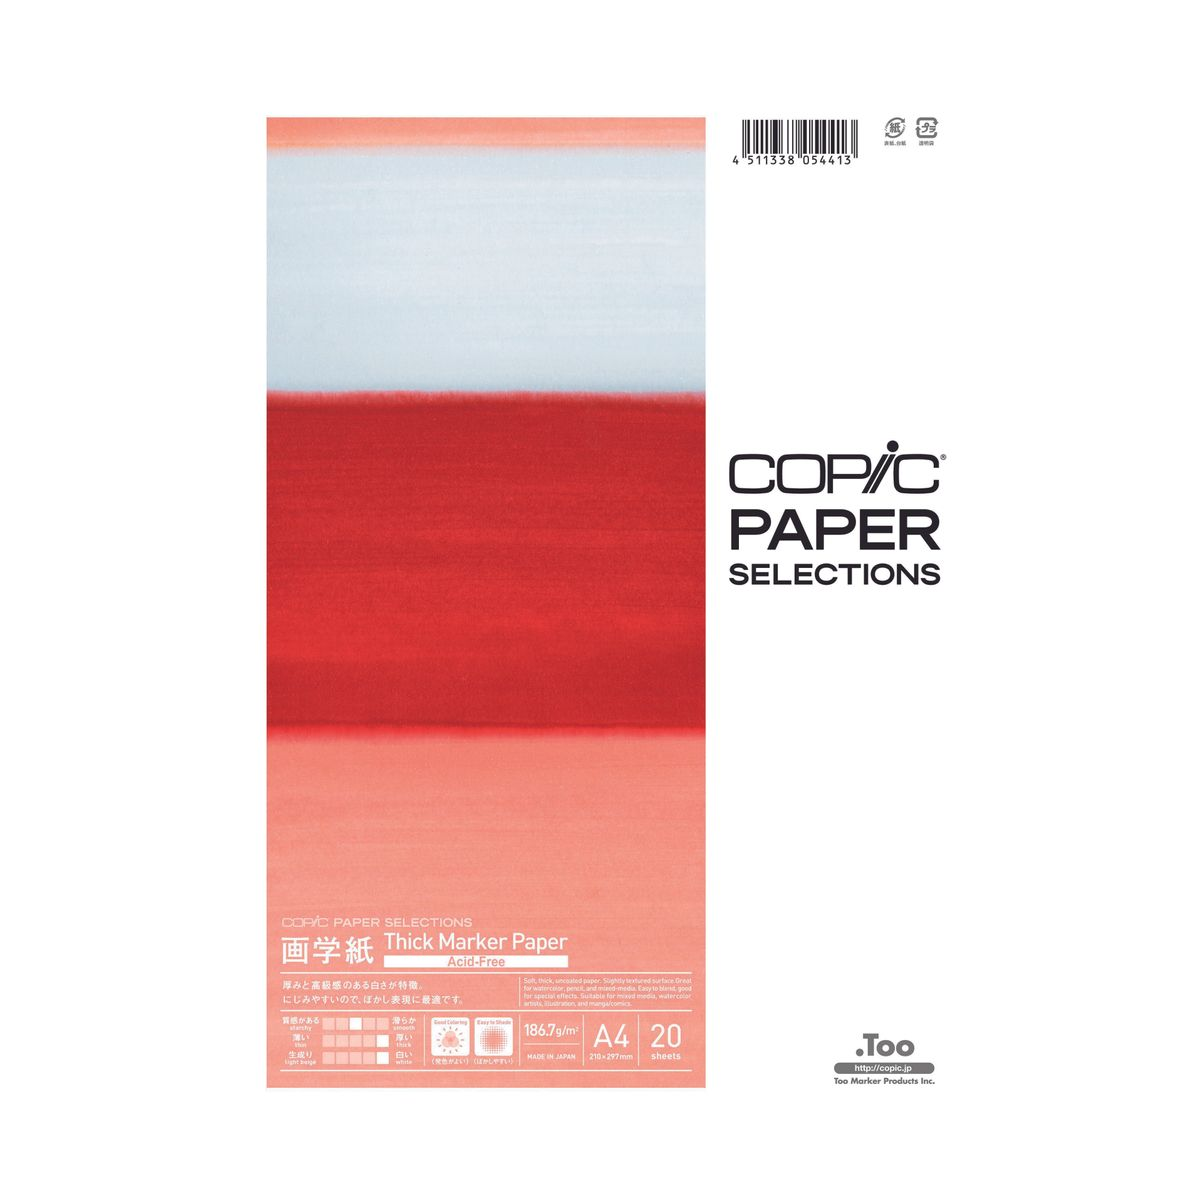 Papel Copic Thick Marker A4 186g/m² 20 Folhas